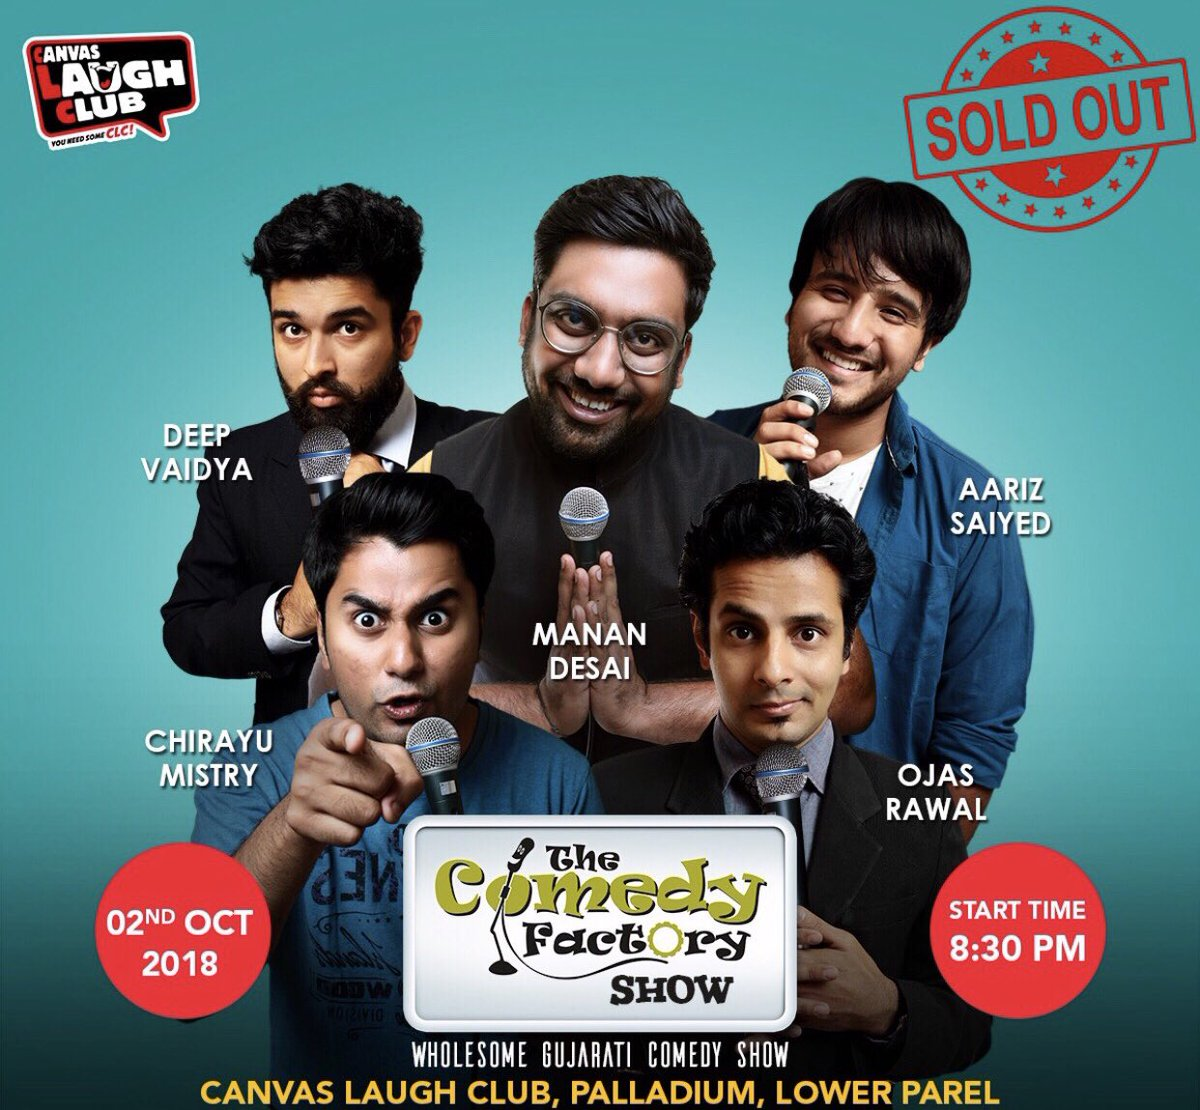 RT @ComedyFactoryIn: SOLD OUT...Thank you Mumbai People for a sold out show😁❤️ . . #mumbai #canvaslaughclub #soldout https://t.co/n07rkOUtsi